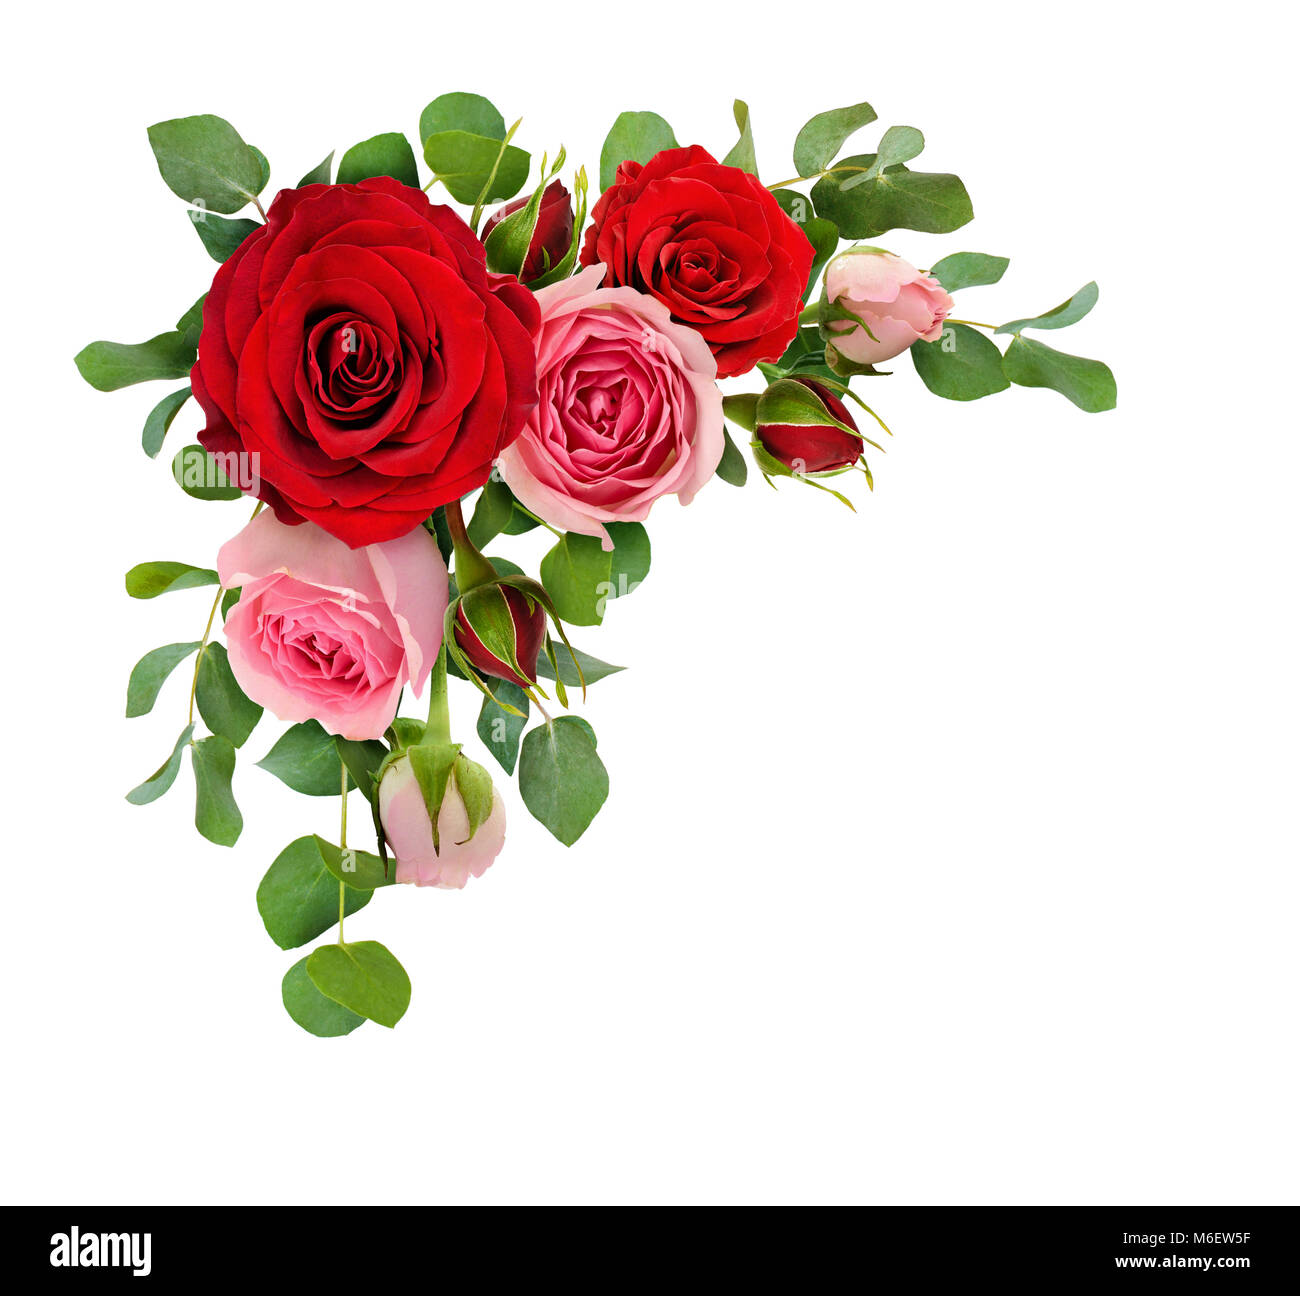 Red And Pink Rose Flowers With Eucalyptus Leaves In A Corner Stock